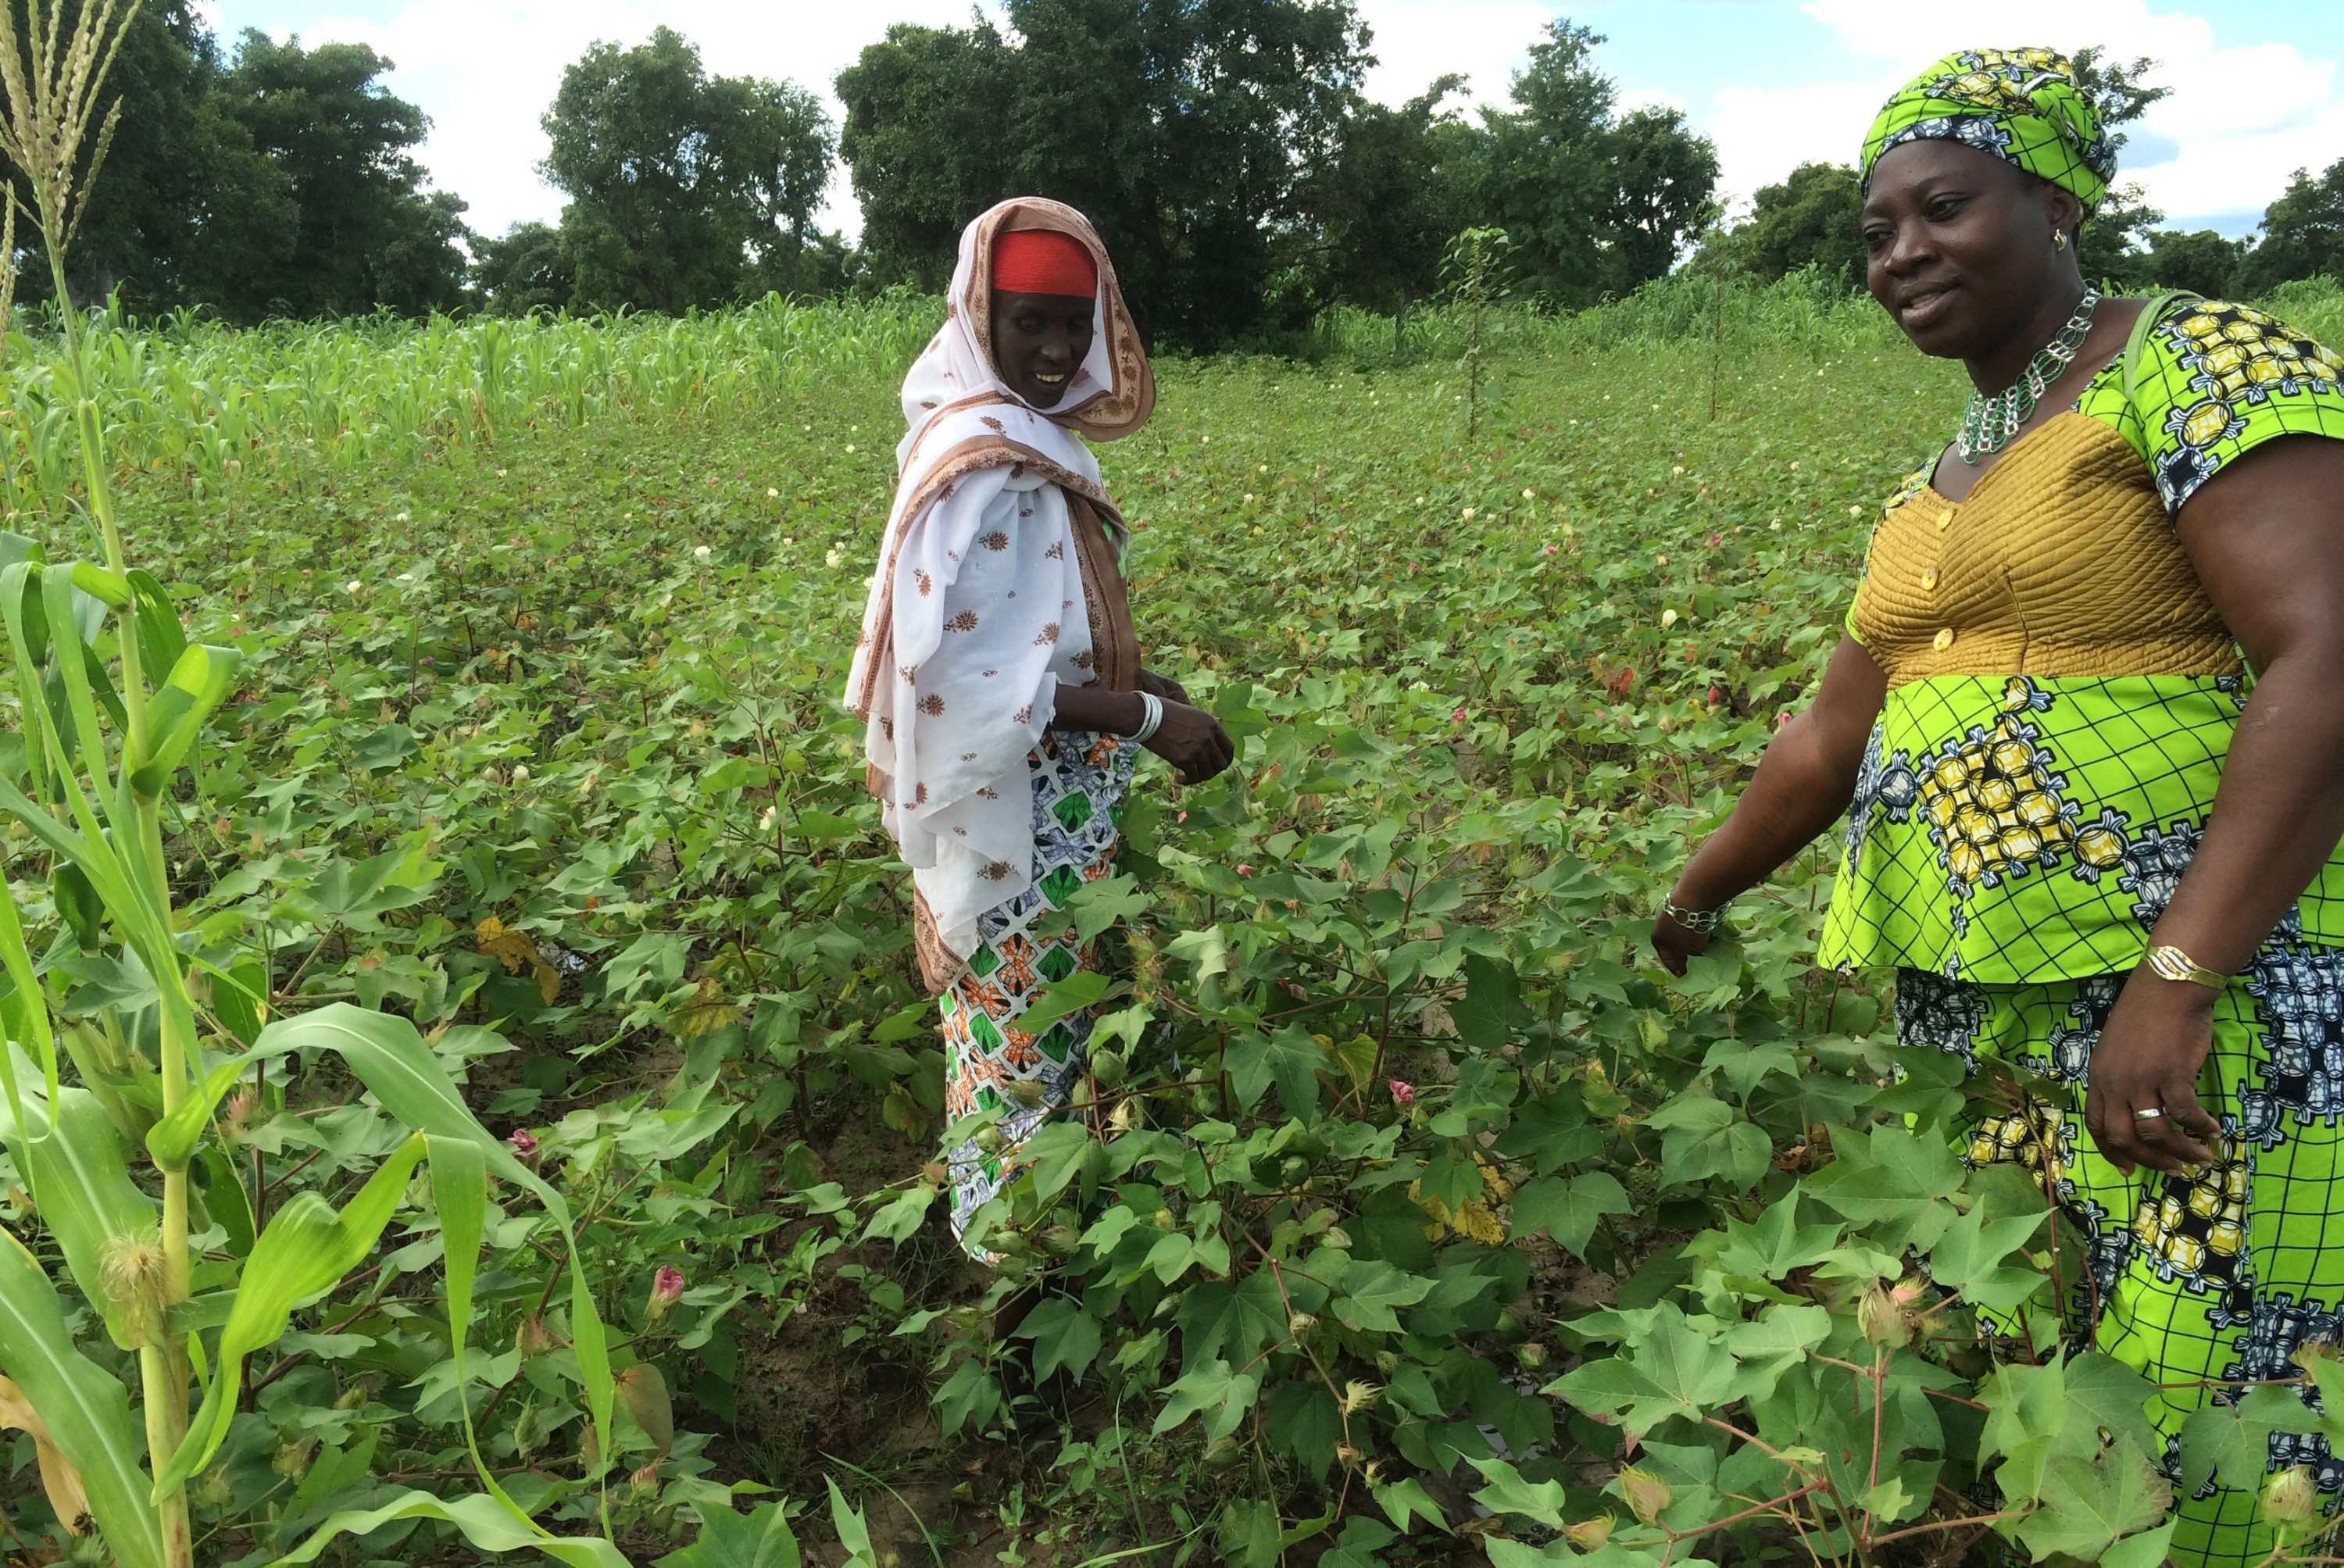 Women working in fields in Ghana